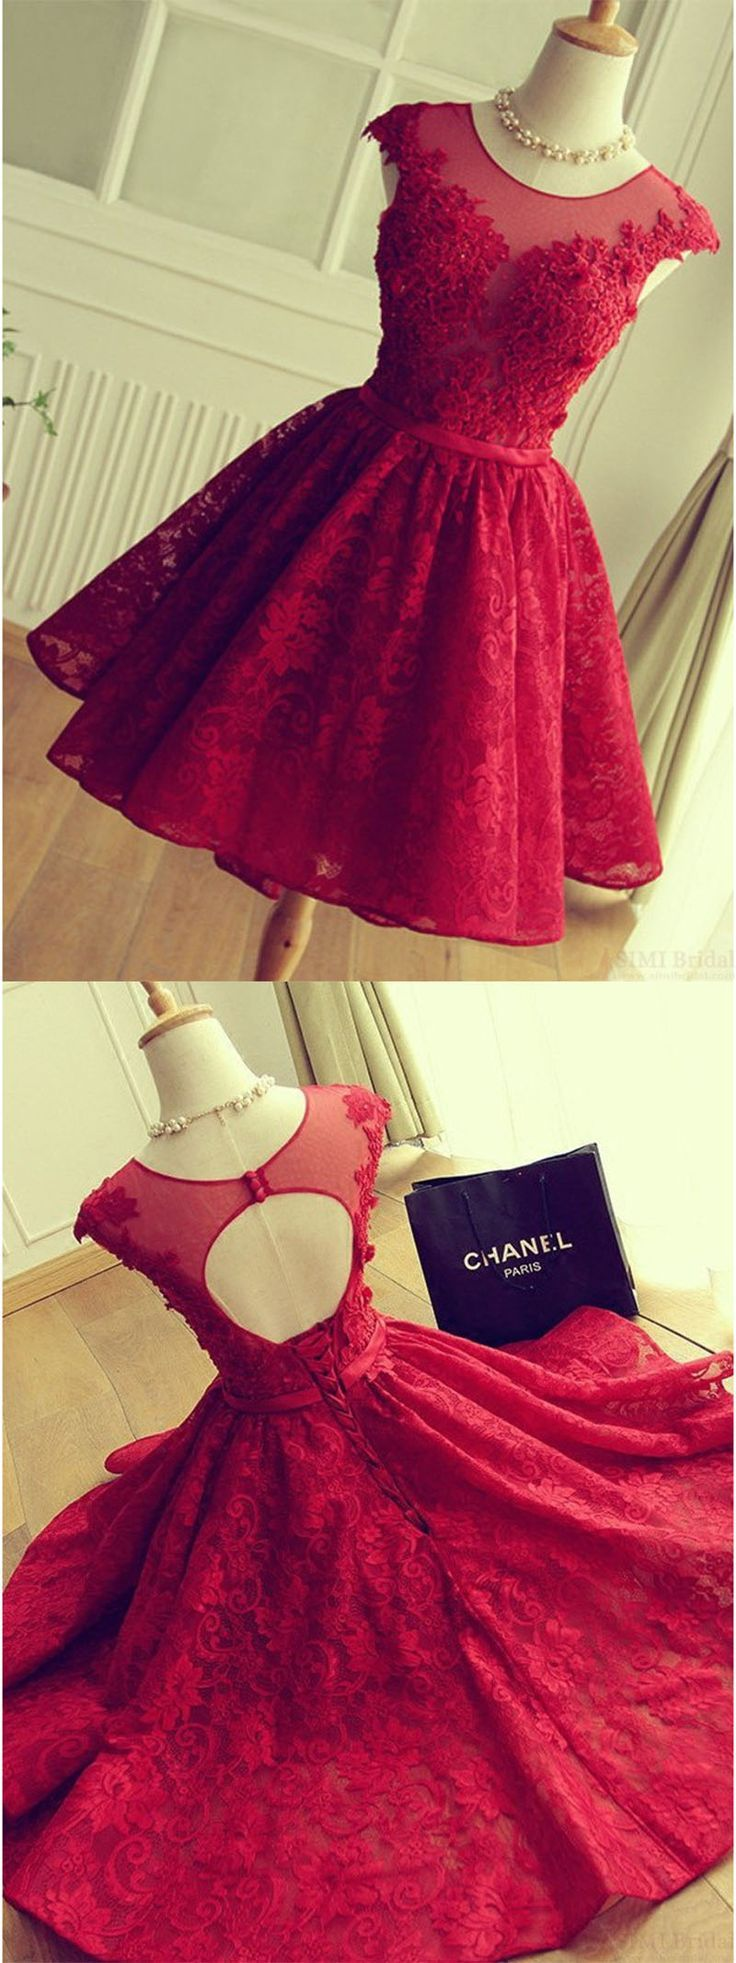 Adorable Knee-length Red Short Lace Prom Dress Homecoming Dress - womens pink dress, buy dresses, cheap formal dresses *sponsored https://www.pinterest.com/dresses_dress/ https://www.pinterest.com/explore/dresses/ https://www.pinterest.com/dresses_dress/wedding-guest-dresses/ https://www.renttherunway.com/products/dress?sort=recommended&